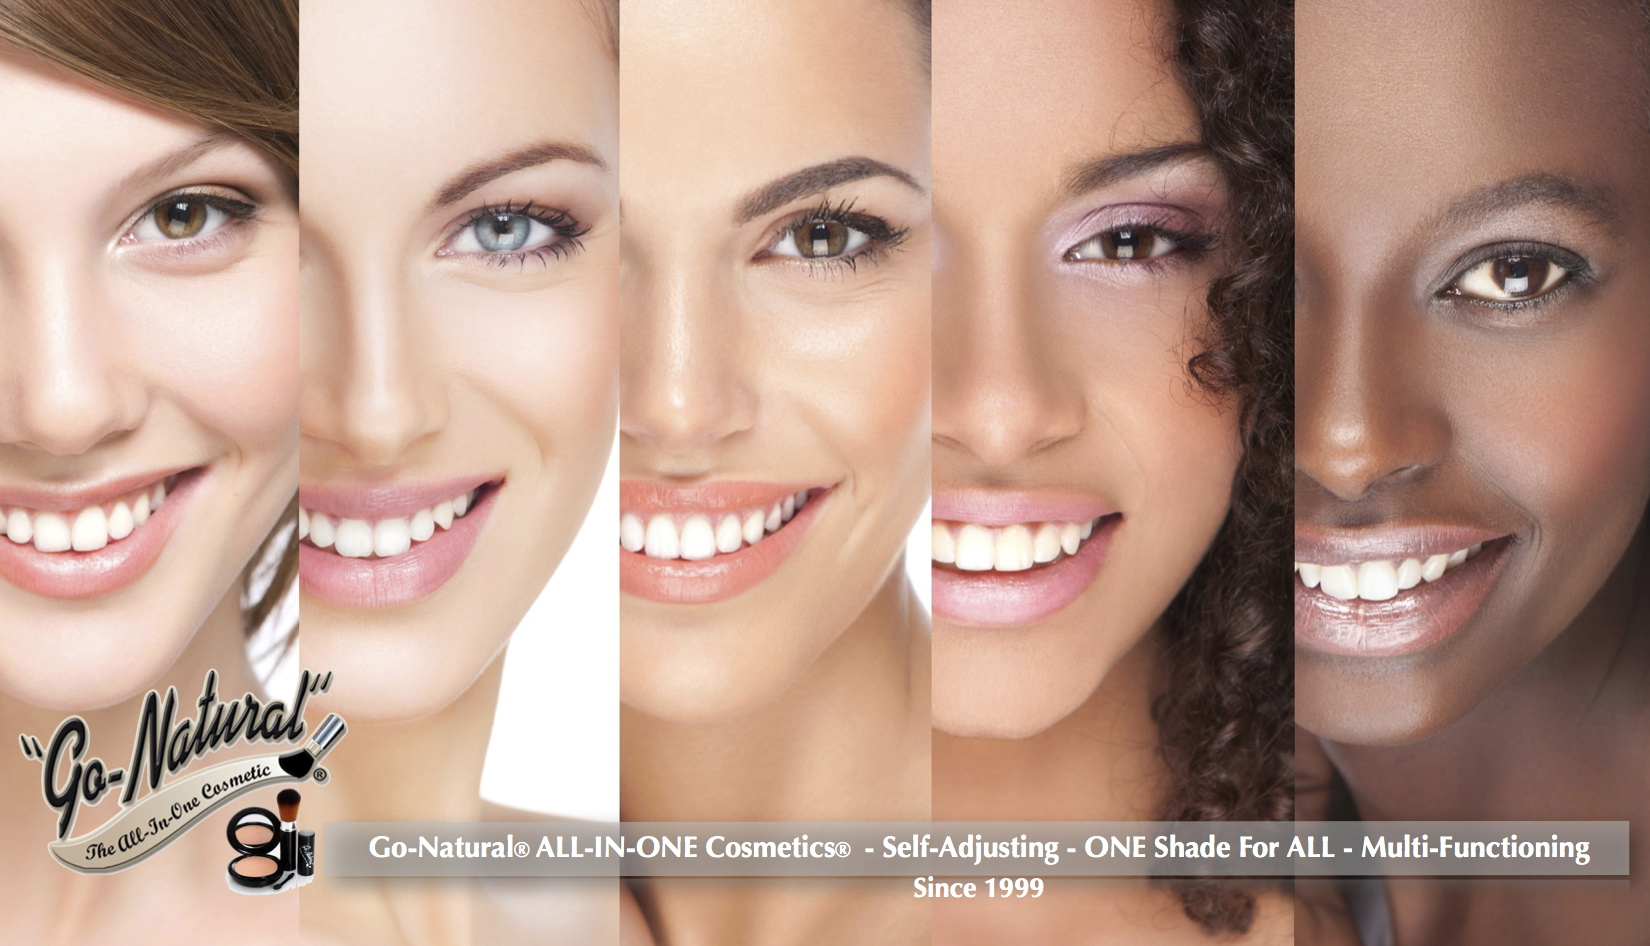 Go Natural The ALL-IN-ONE Cosmetic ®